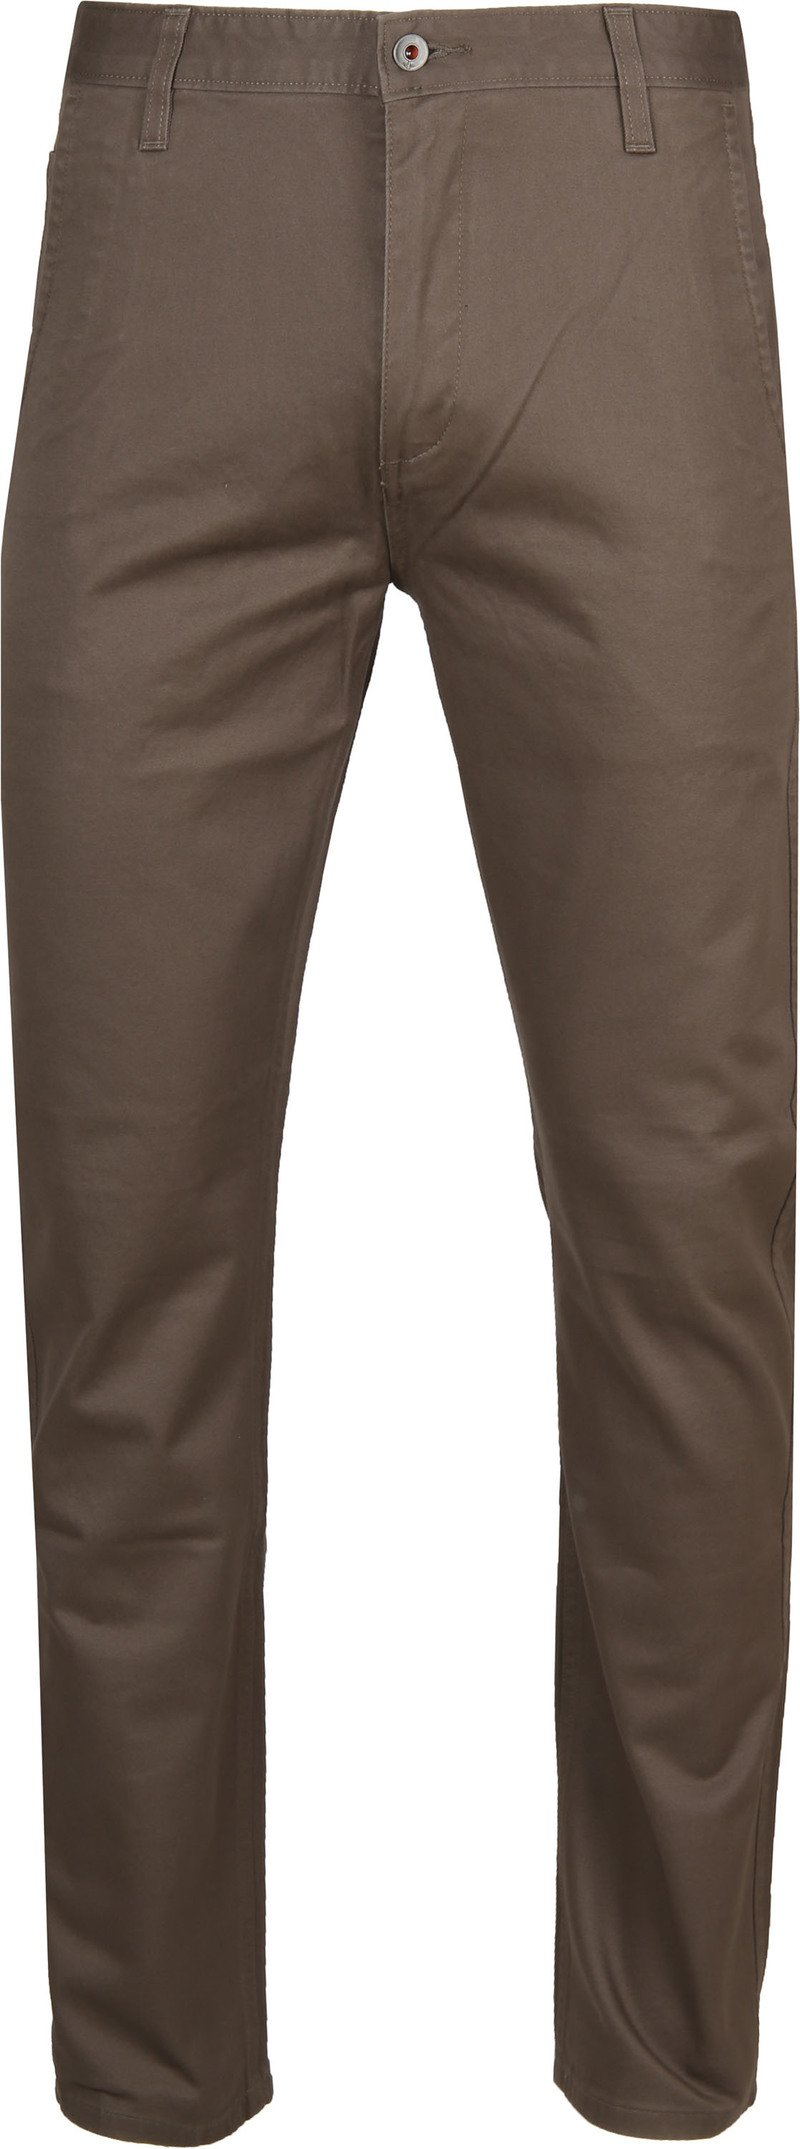 Dockers Alpha Stretch khaki Brown photo 0